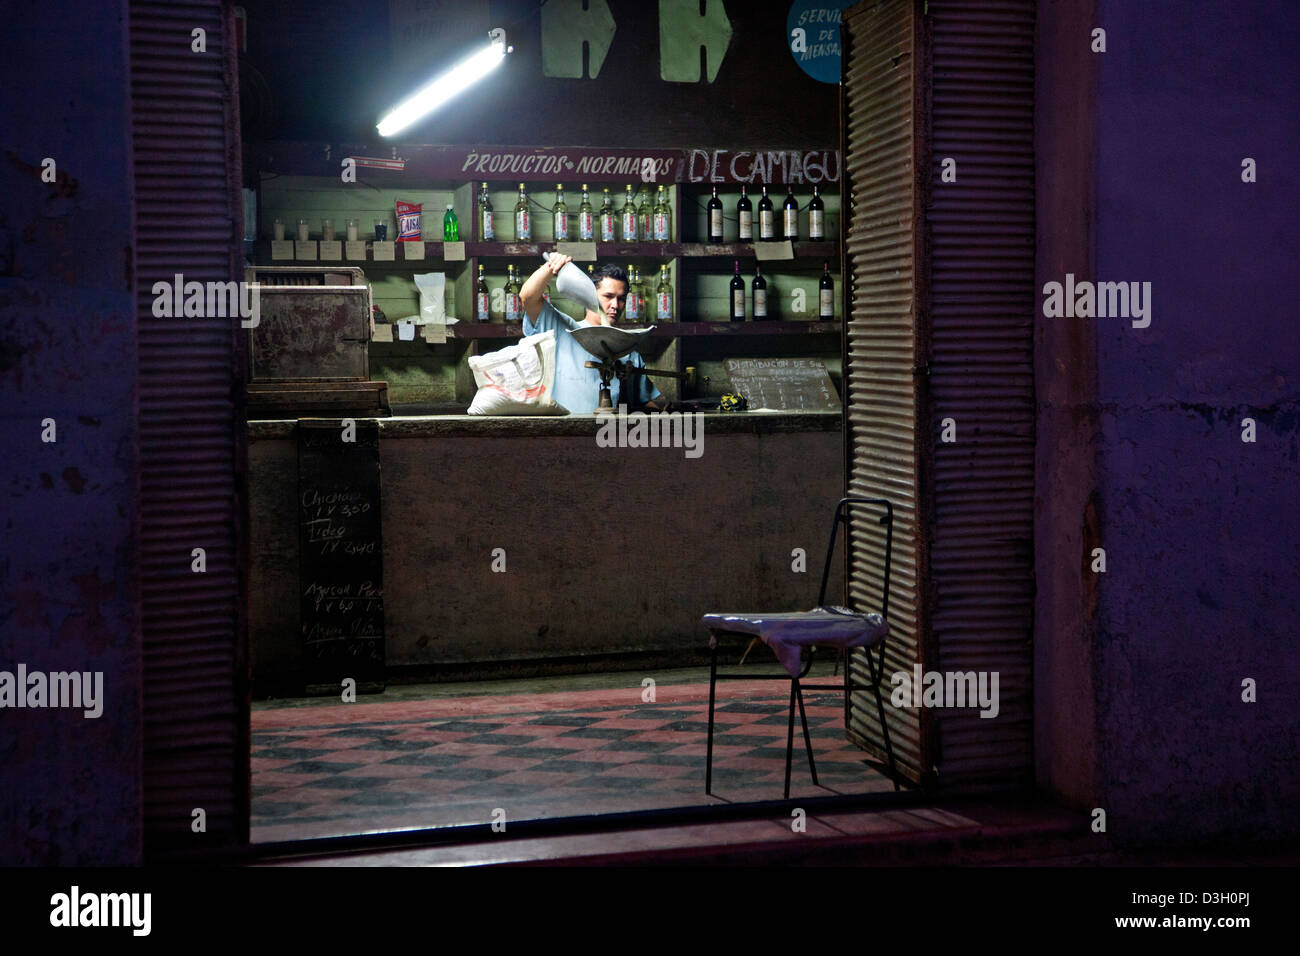 Shopkeeper behind counter of Cuban state shop in the city Camagüey, Cuba, Caribbean - Stock Image